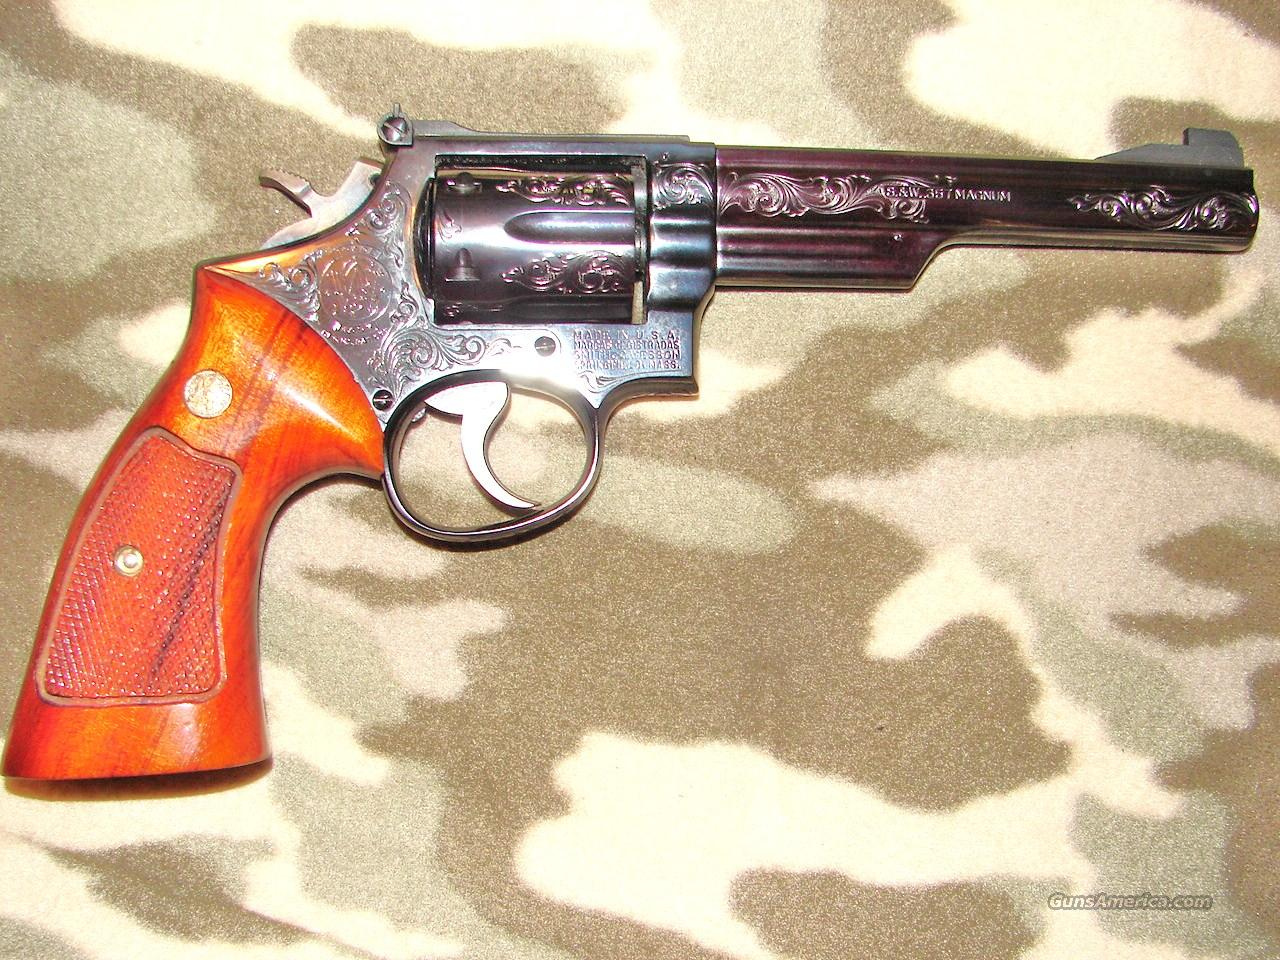 Smith & Wesson 19-3 Engraved  Guns > Pistols > Smith & Wesson Revolvers > Full Frame Revolver